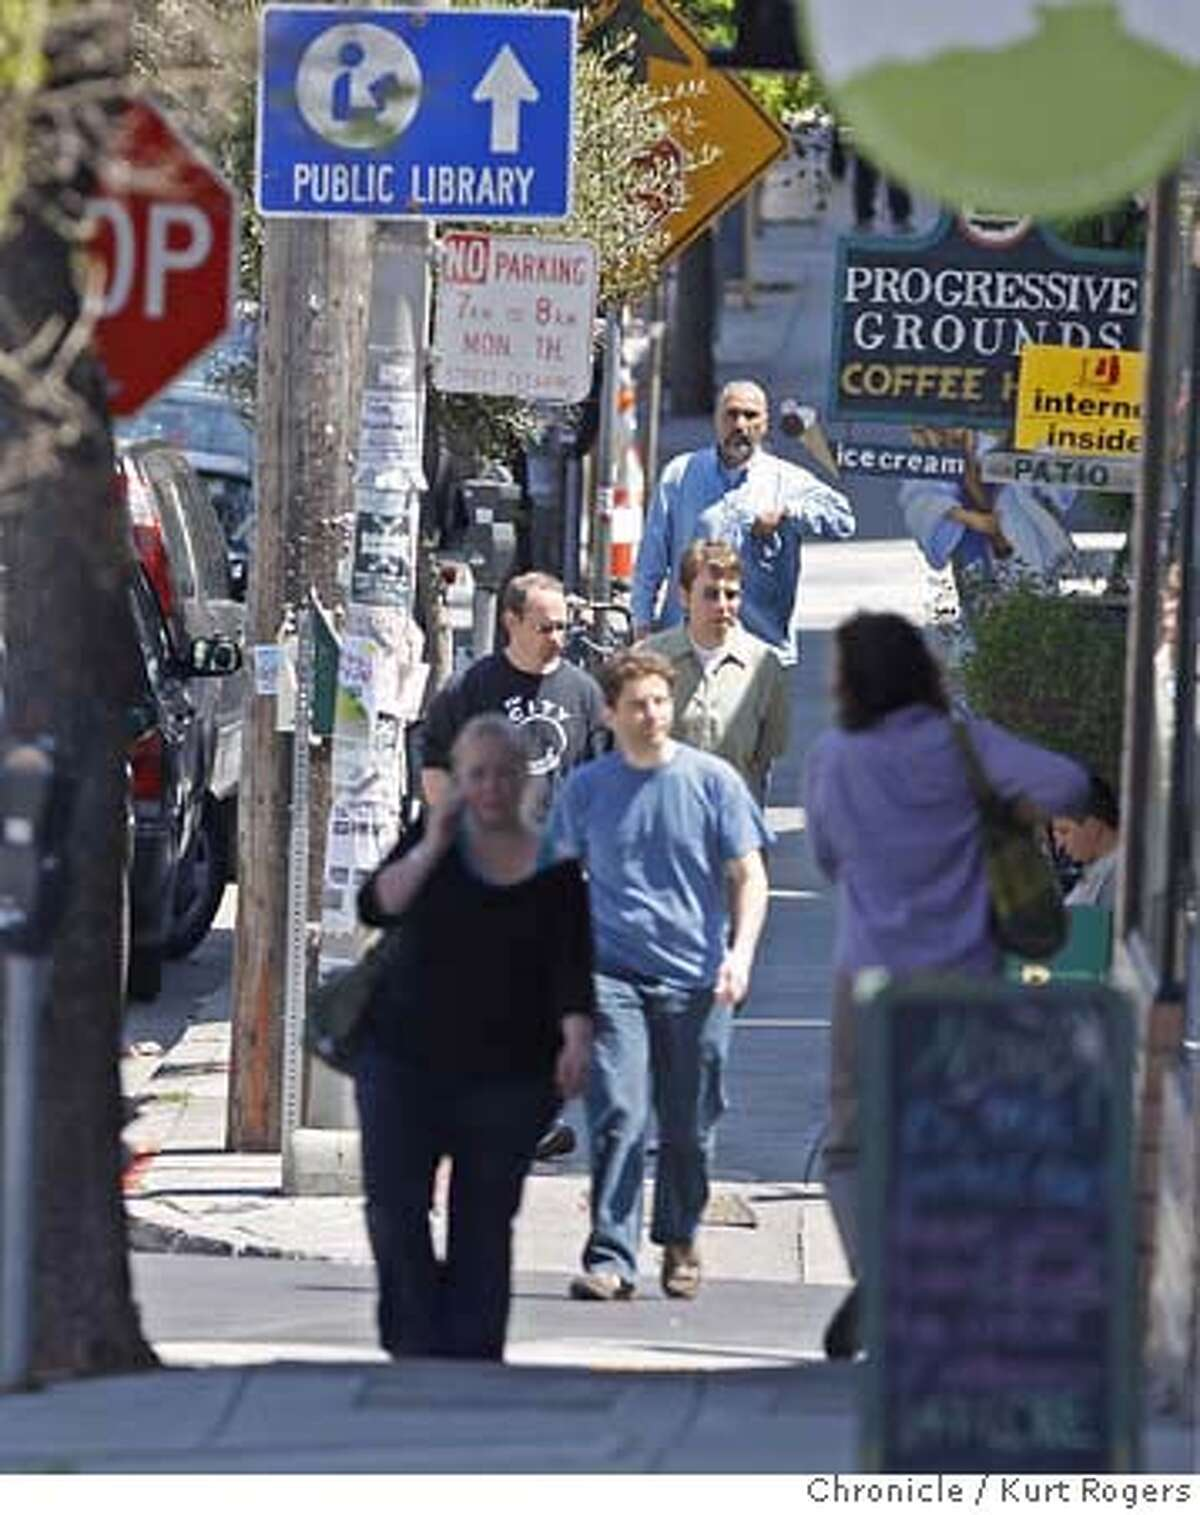 ###Live Caption:People walk up Courtland Ave as a big jump in the number of muggings in San Francisco?•s Glen Park and Bernal Heights neighborhoods Last month, there were 52 robberies reported in the Ingleside police district, which includes those neighborhoods. On Friday April 25 2008 in San Francisco, Calif Photo By Kurt Rogers / San Francisco Chronicle###Caption History:People walk up Courtland Ave as a big jump in the number of muggings in San Francisco�s Glen Park and Bernal Heights neighborhoods Last month, there were 52 robberies reported in the Ingleside police district, which includes those neighborhoods. On Friday April 25 2008 in San Francisco, Calif Photo By Kurt Rogers / San Francisco Chronicle###Notes:Robberies in Glenn Park and Bernal Heights.###Special Instructions:MANDATORY CREDIT FOR PHOTOG AND SAN FRANCISCO CHRONICLE/NO SALES-MAGS OUT